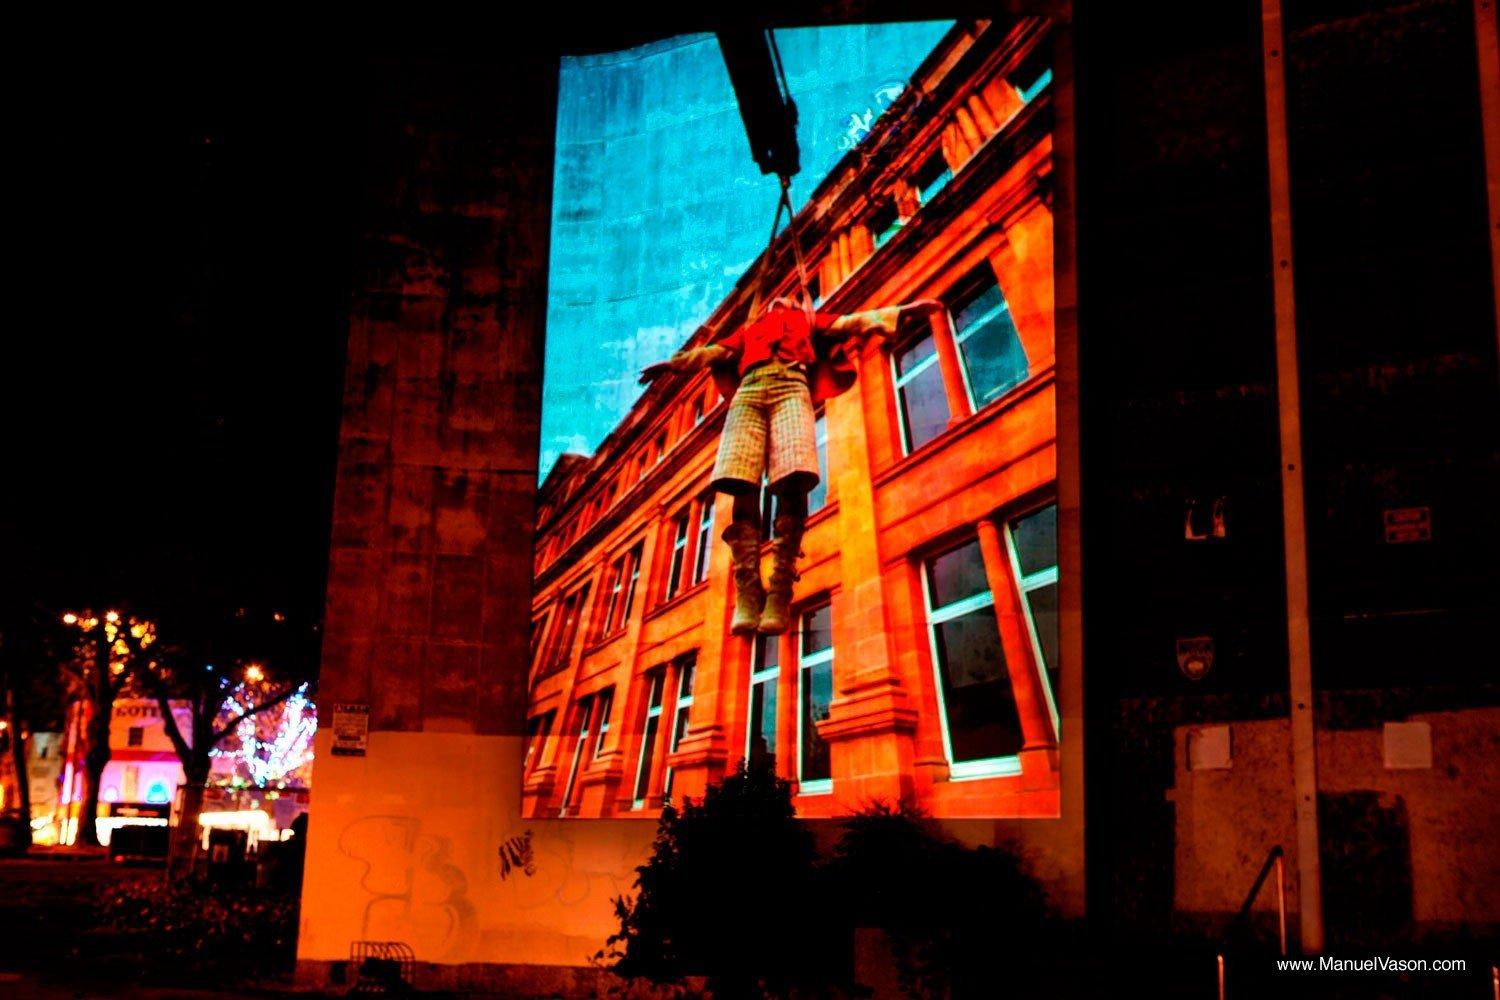 02 Still Image Moving, Inbetween Time Festival, Bristol 2010